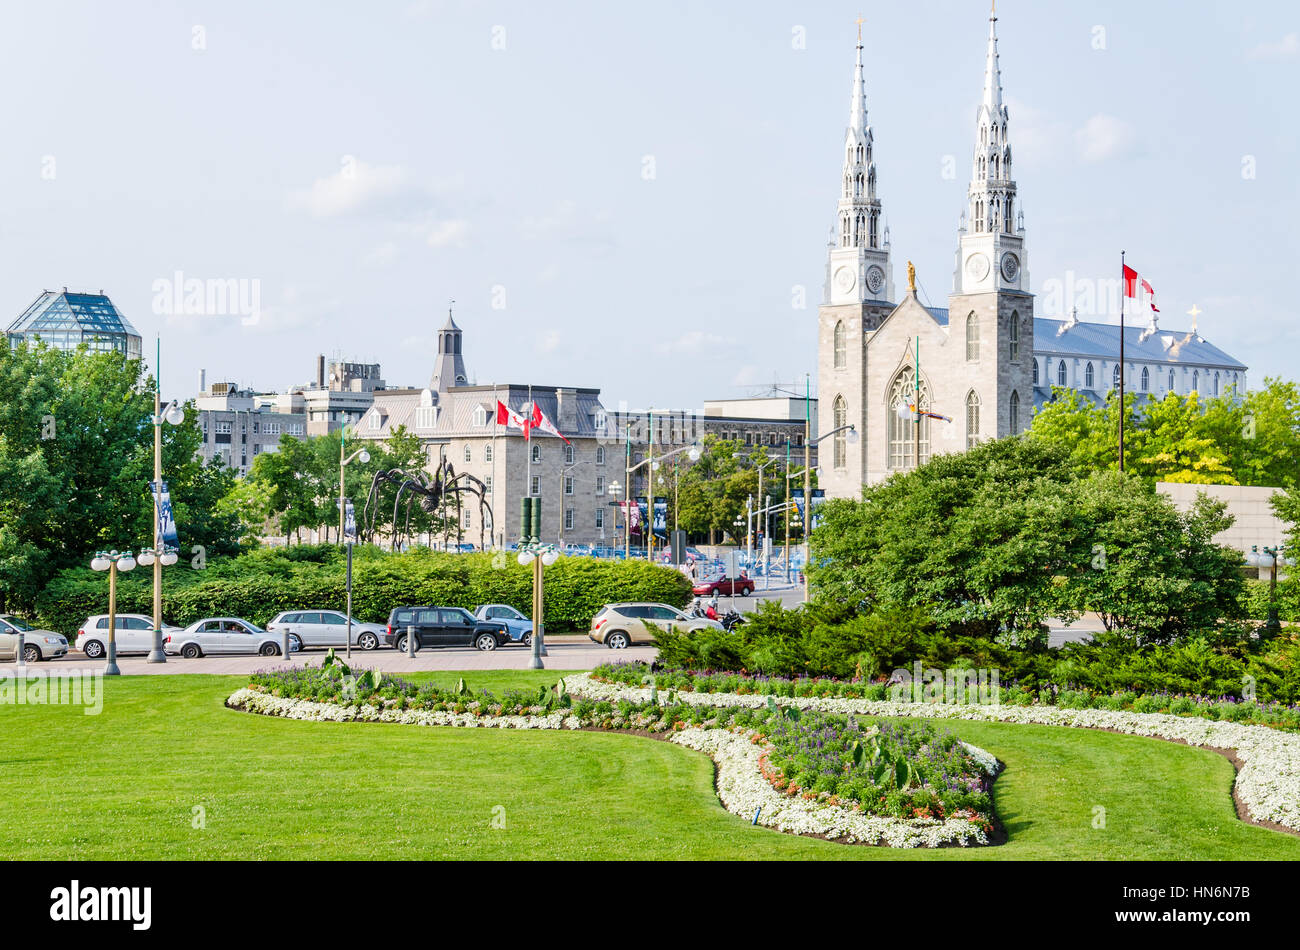 Ottawa, Canada - July 24, 2014: Notre-Dame Cathedral roman catholic Basilica with green trees and park with flags - Stock Image